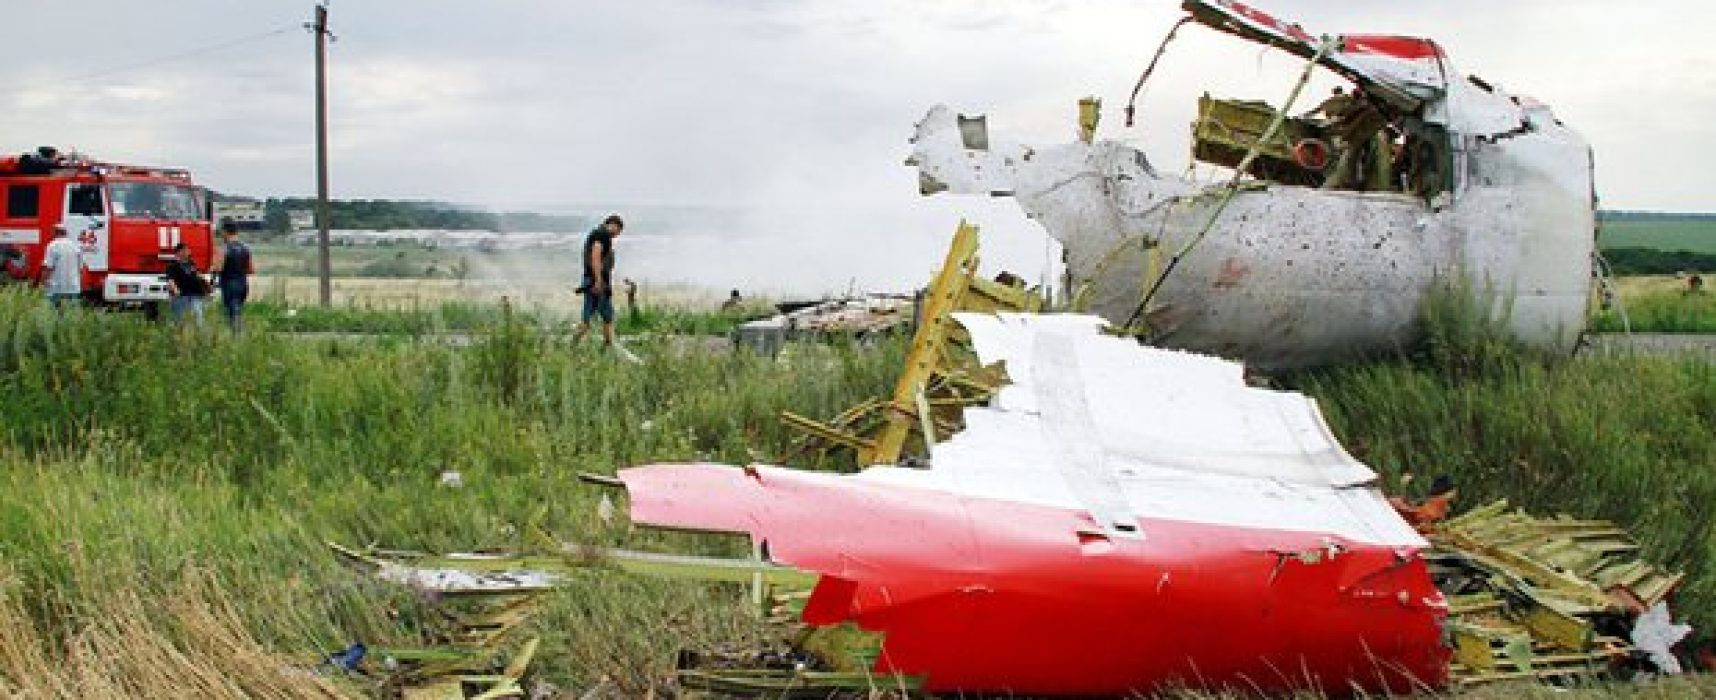 BBC: Sunday Express wrong to say film claims MH17 was downed by Ukraine